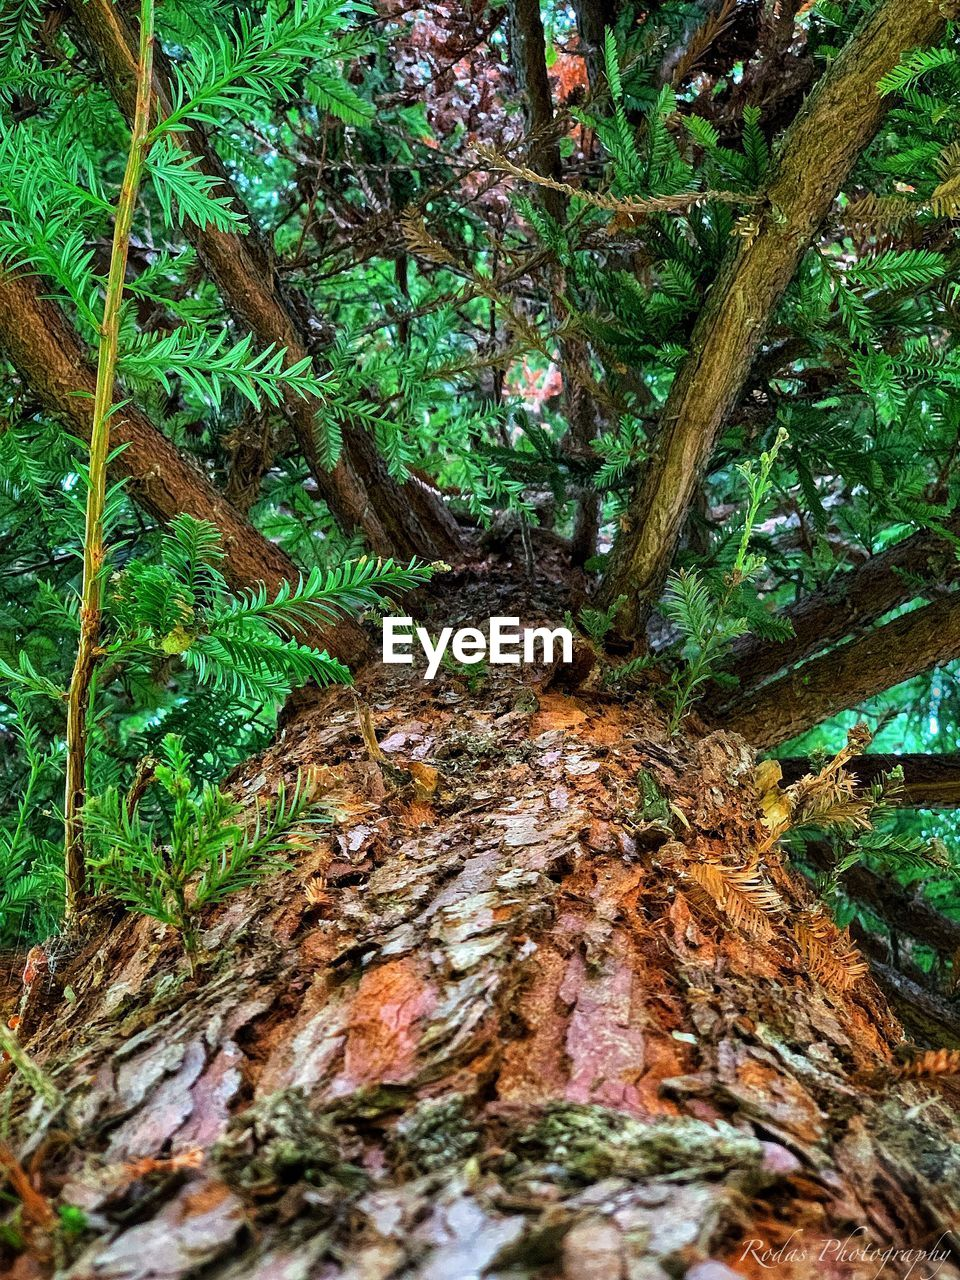 tree, plant, growth, forest, trunk, tree trunk, land, nature, green color, moss, day, tranquility, no people, beauty in nature, outdoors, close-up, woodland, plant part, water, bark